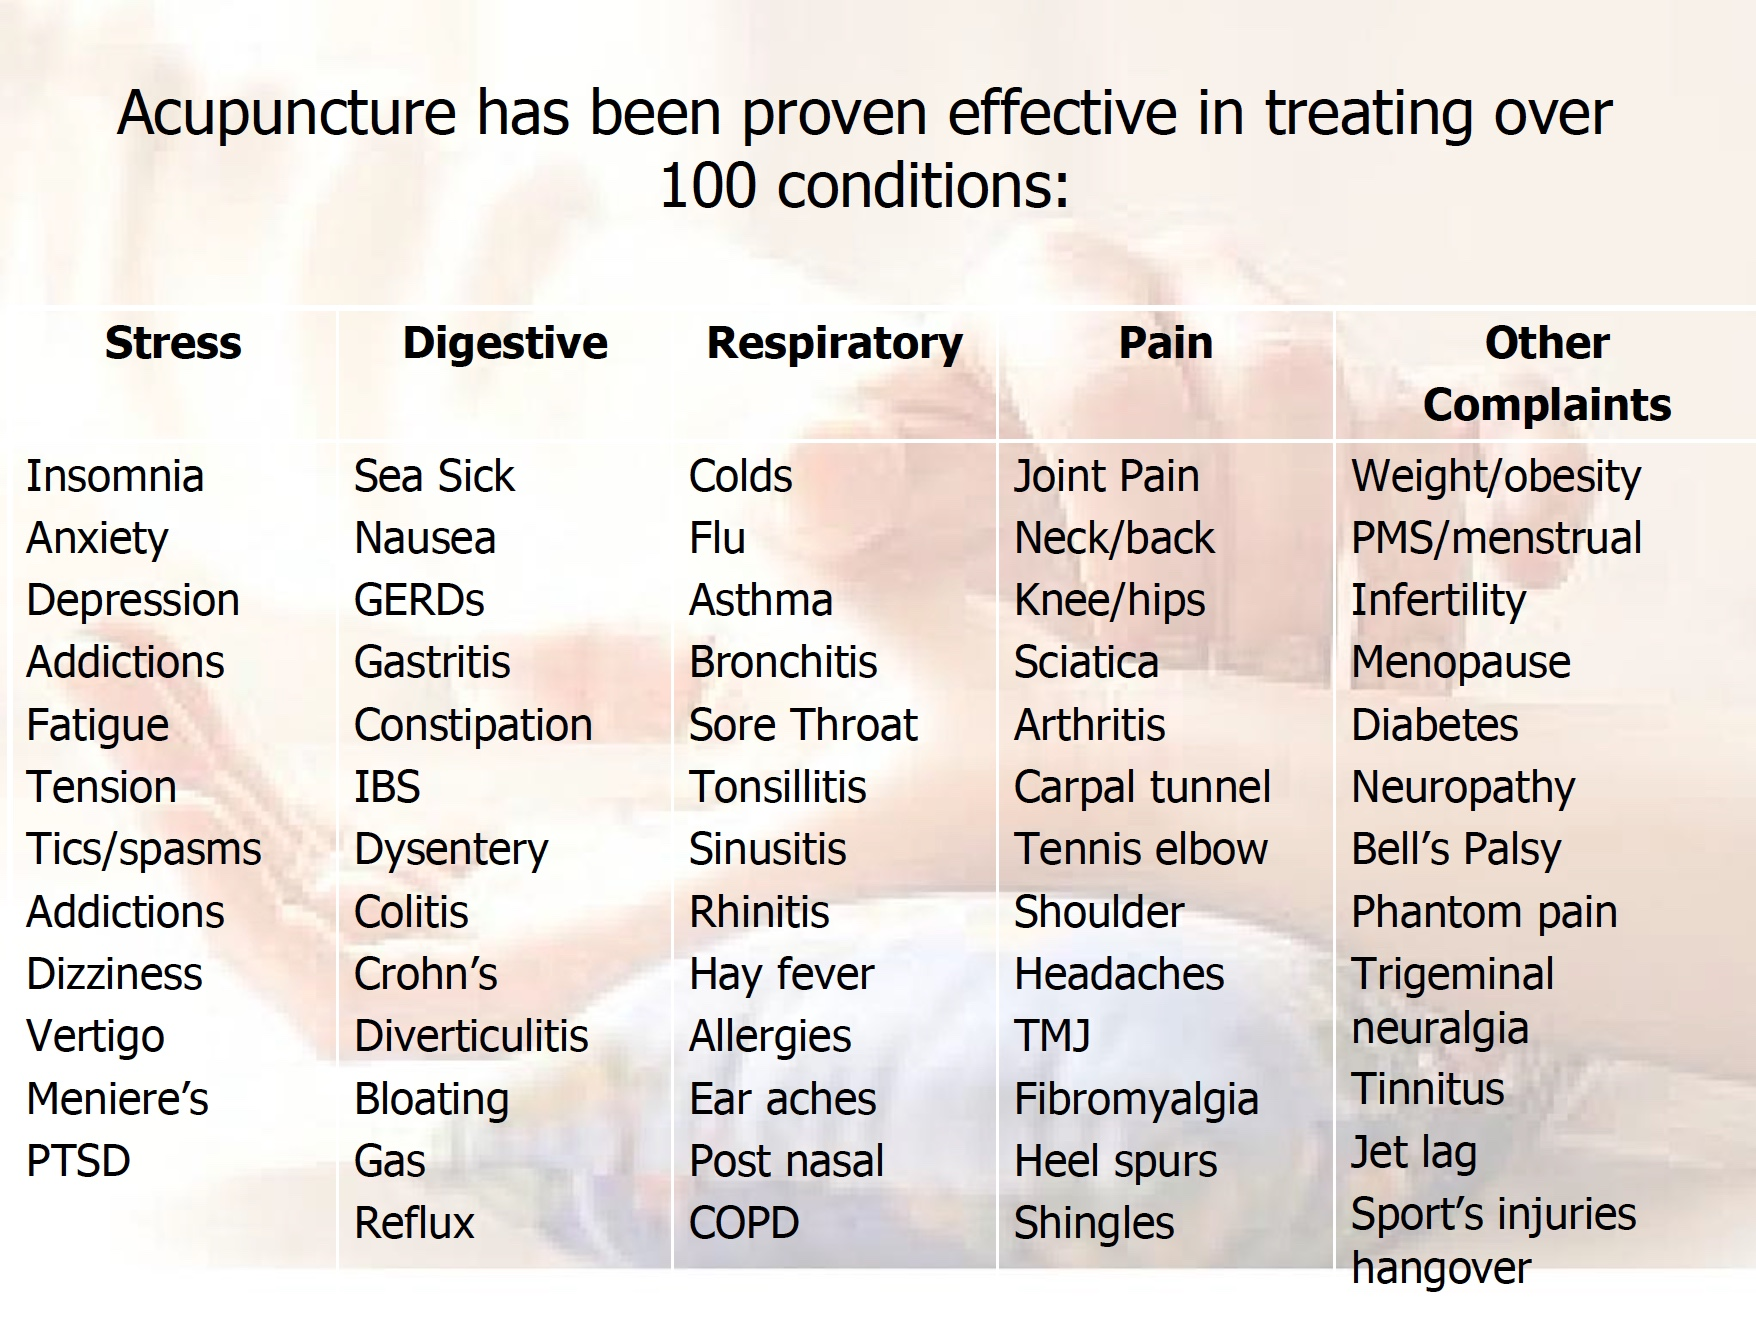 Please note that is not a comprehensive list of ALL conditions that can be effectively treated by acupuncture therapy treatments.